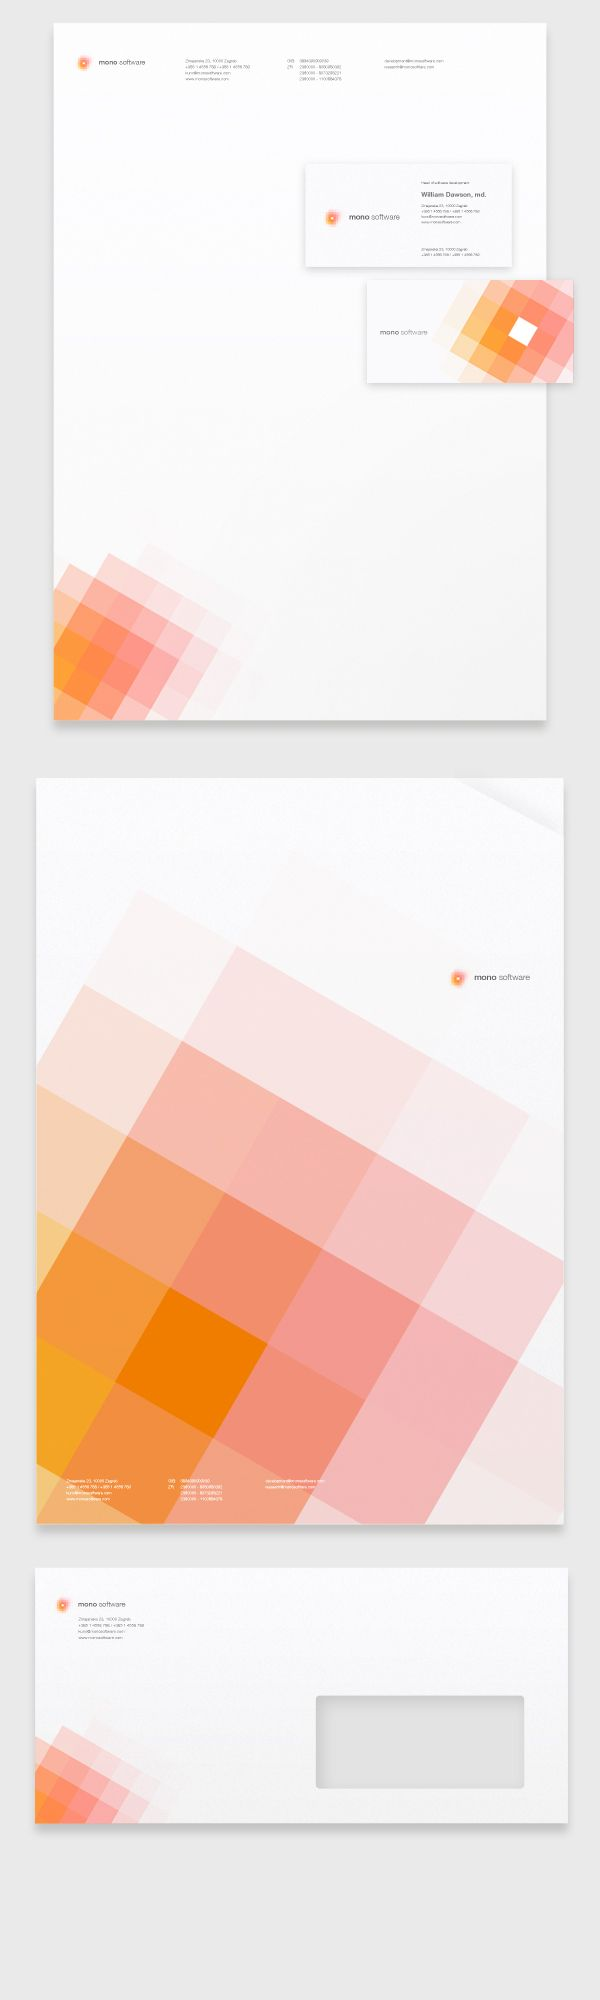 Mono Software Corporate Identity by Krešimir Kraljević, via Behance